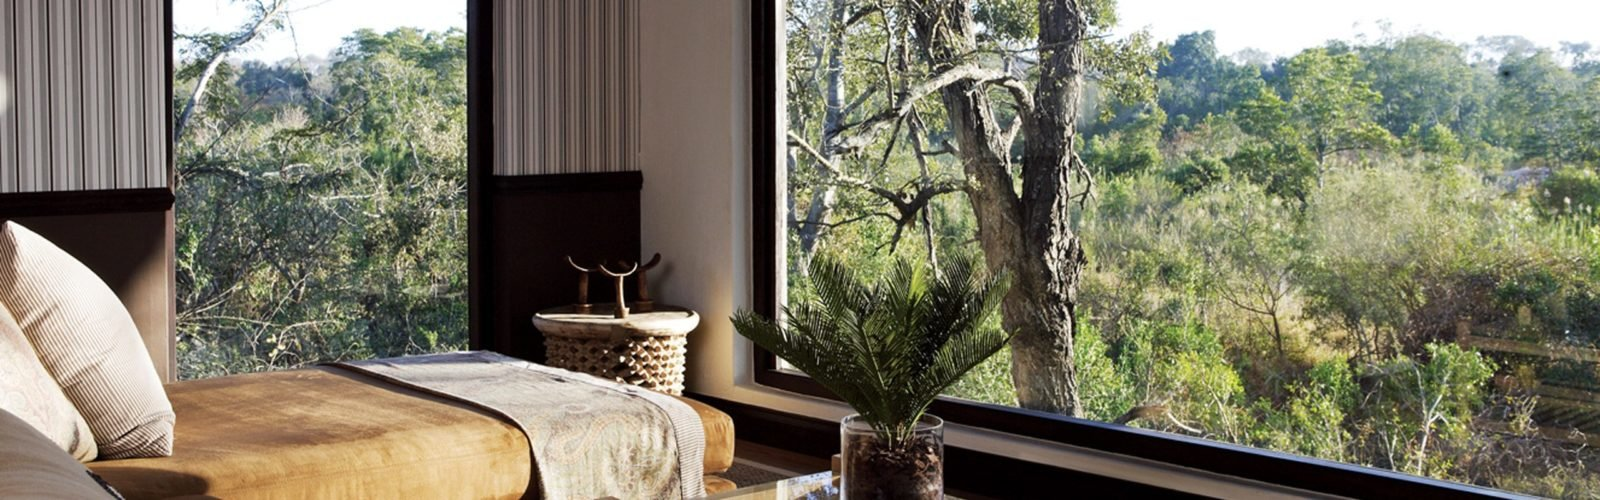 Pioneer Camp, suite view, Londolozi, Sabi Sands, South Africa